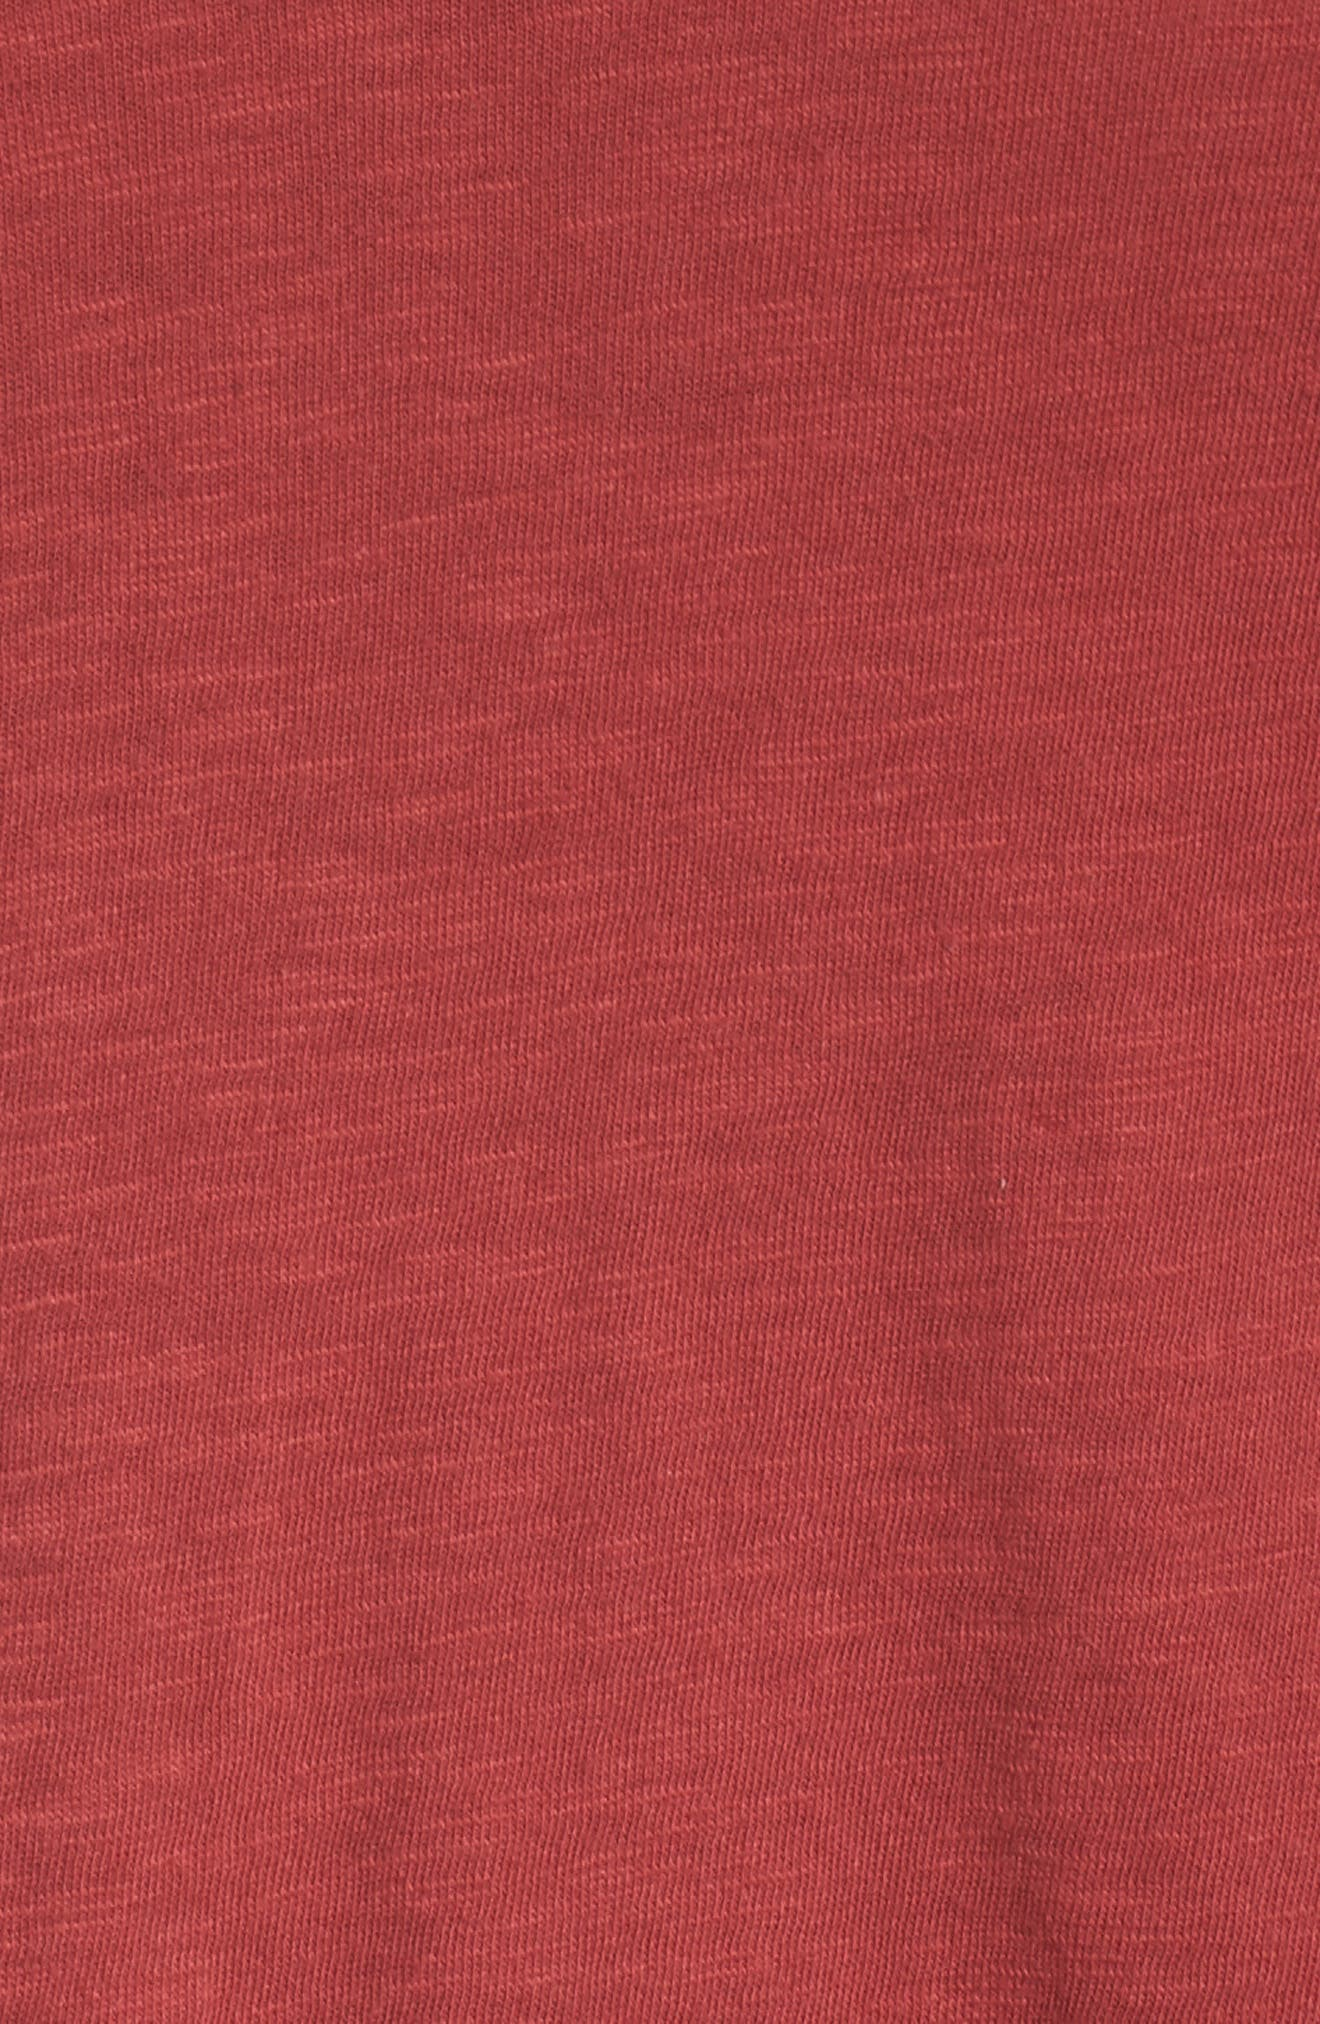 Pleat Sleeve Cotton Tee,                             Alternate thumbnail 5, color,                             Red Earth